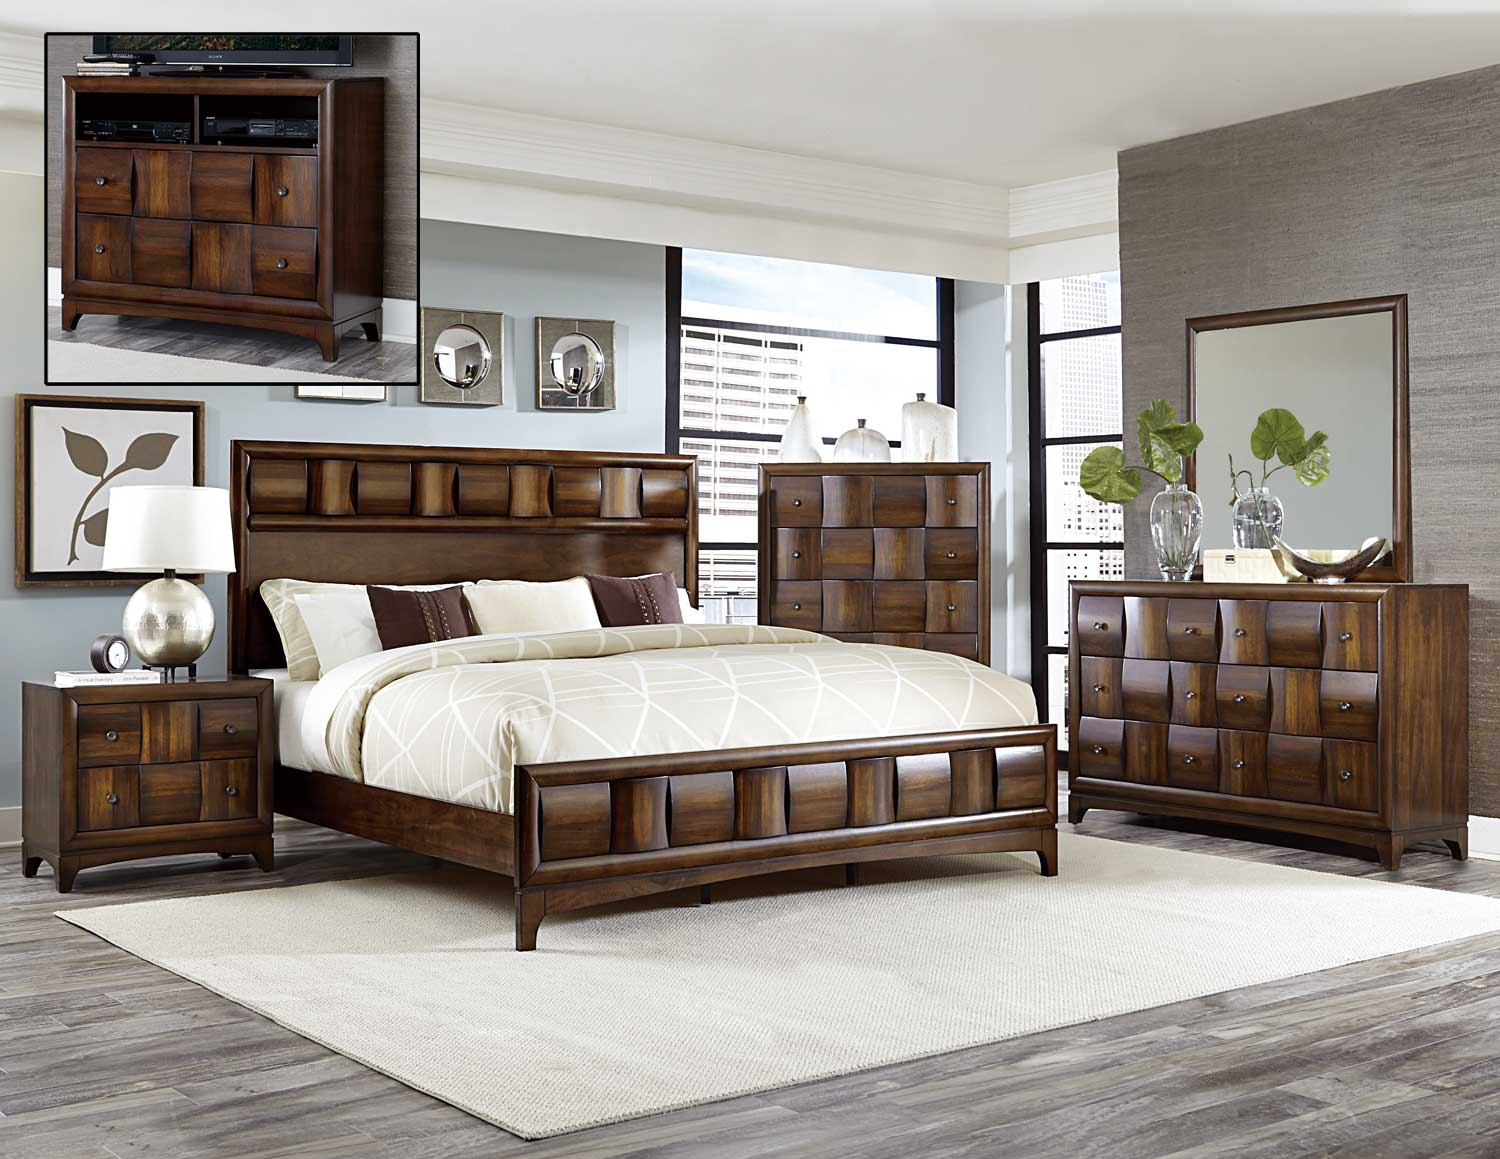 Homelegance Porter Bedroom Set Warm Walnut 1852 Bedroom Set